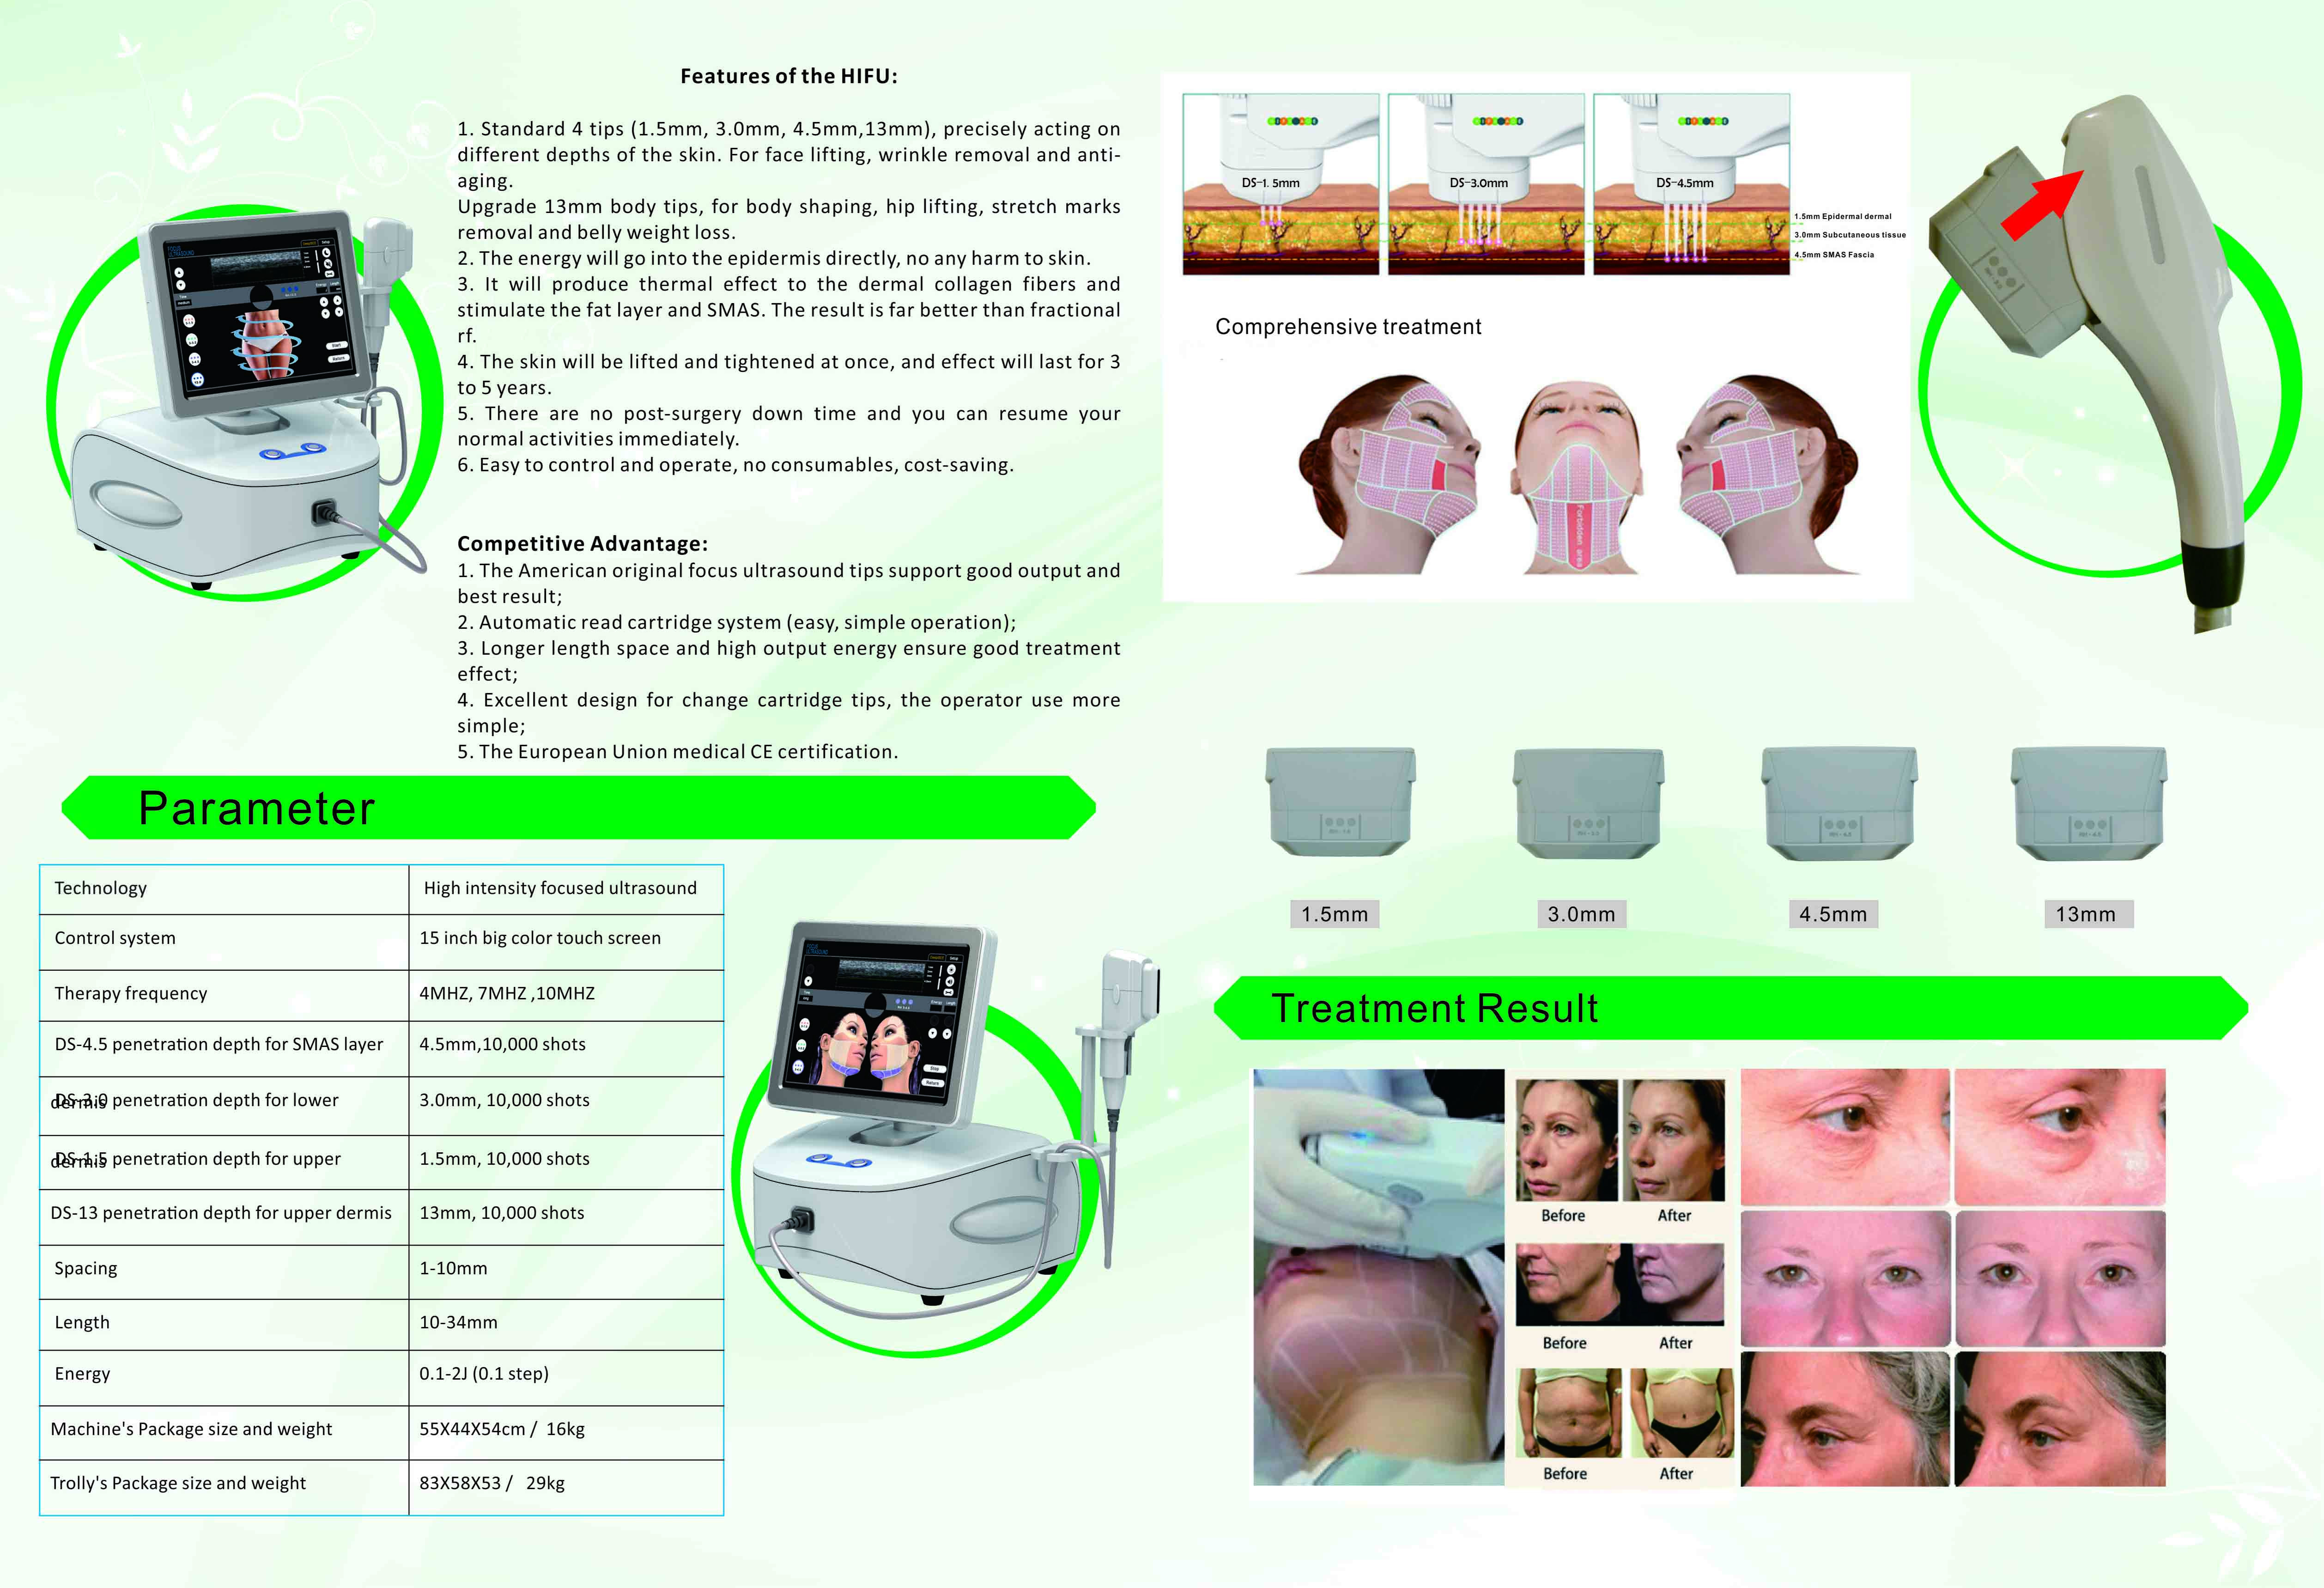 Face Lifting Body Shaping High Intensity Focused Ultrasound With 4 Cartridge